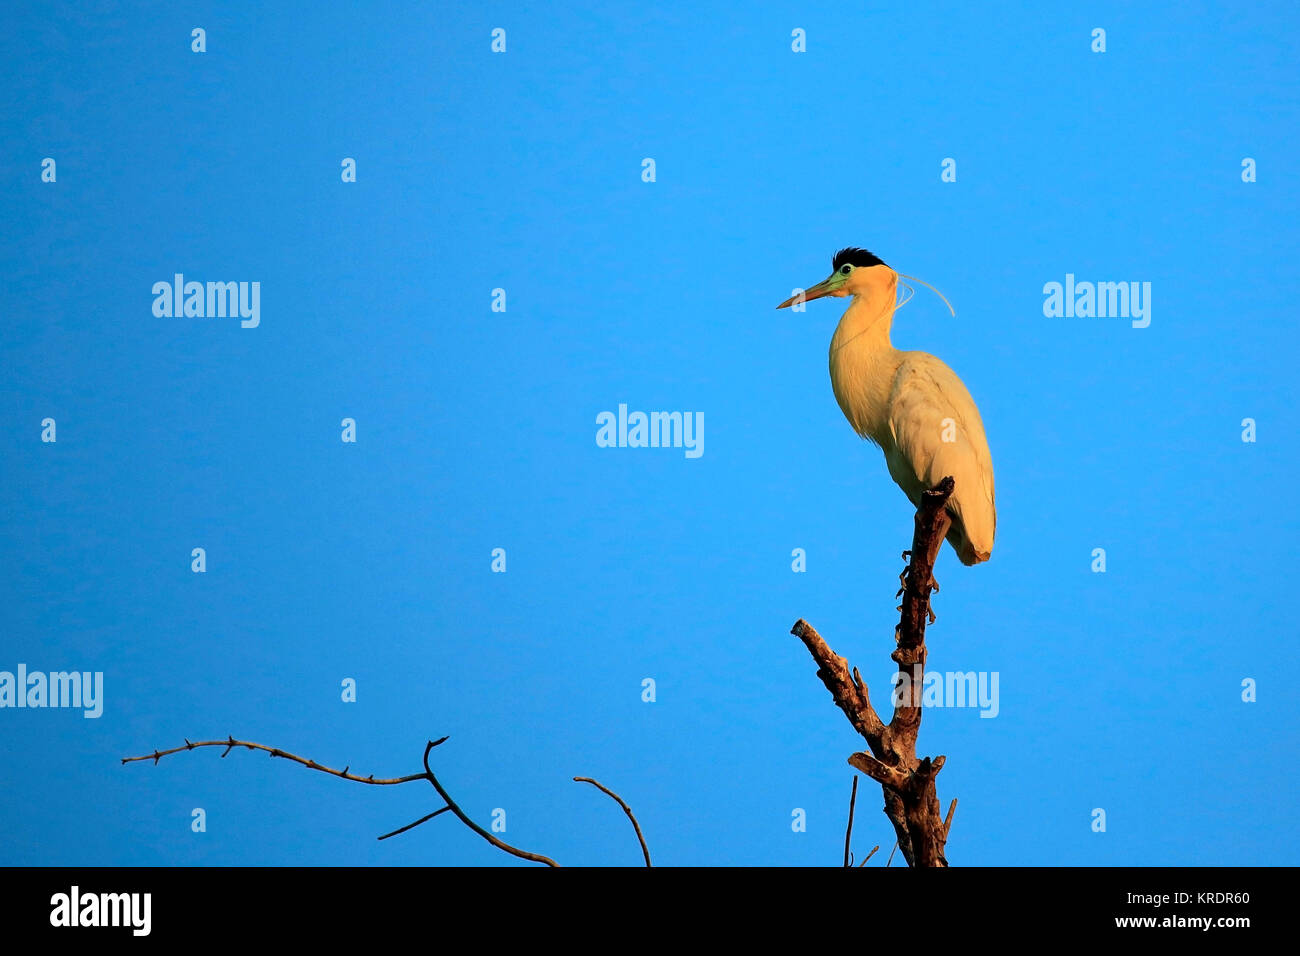 Capped Heron in Top of a Tree, in Twilight. Rio Claro, Pantanal, Brazil - Stock Image